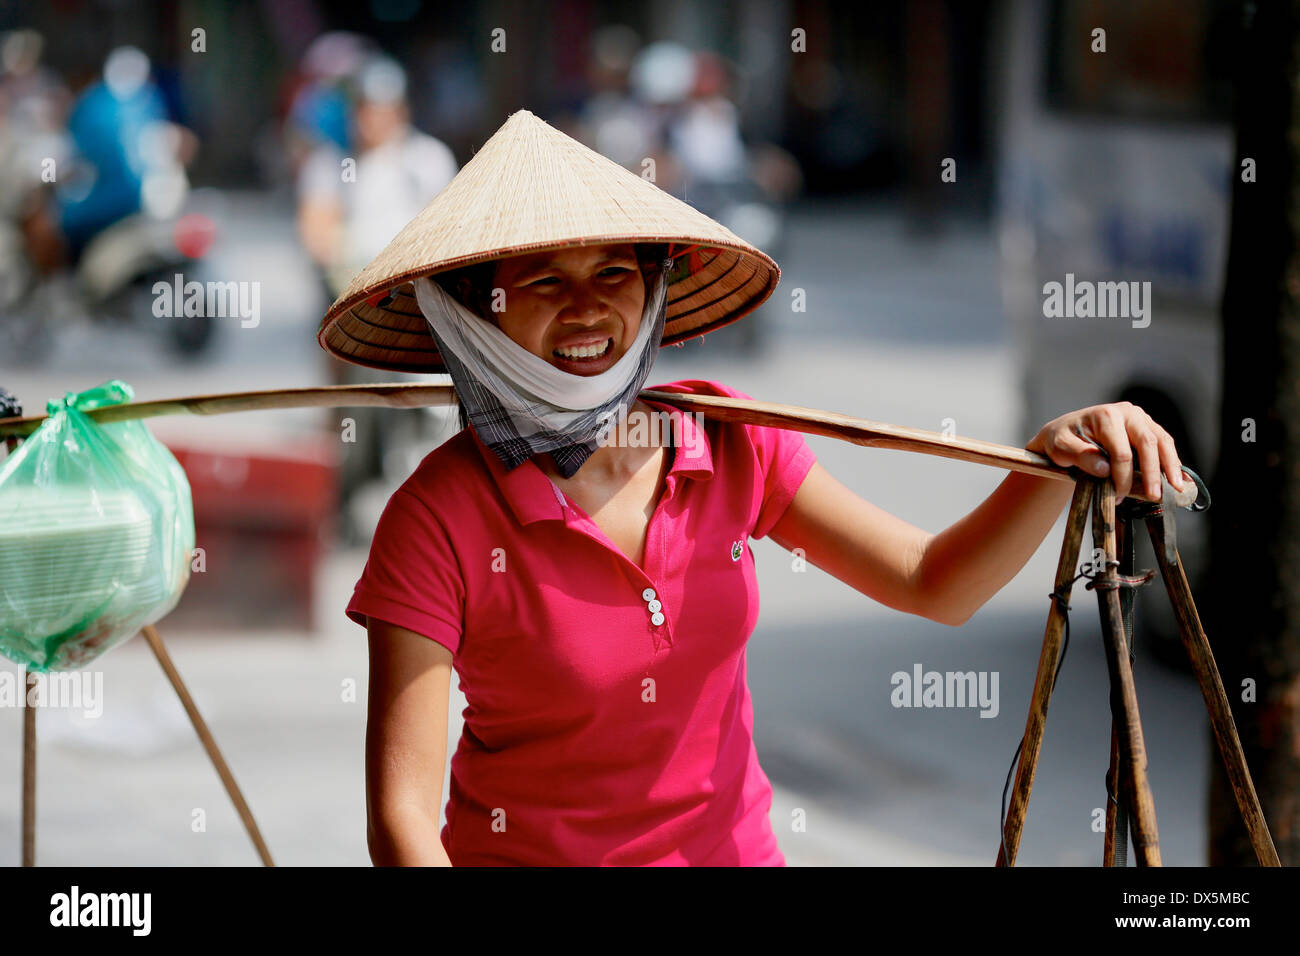 Street scene in the old quarter of Hanoi.  Street trader  in traditional conical hat carrying food using a traditional yoke. - Stock Image